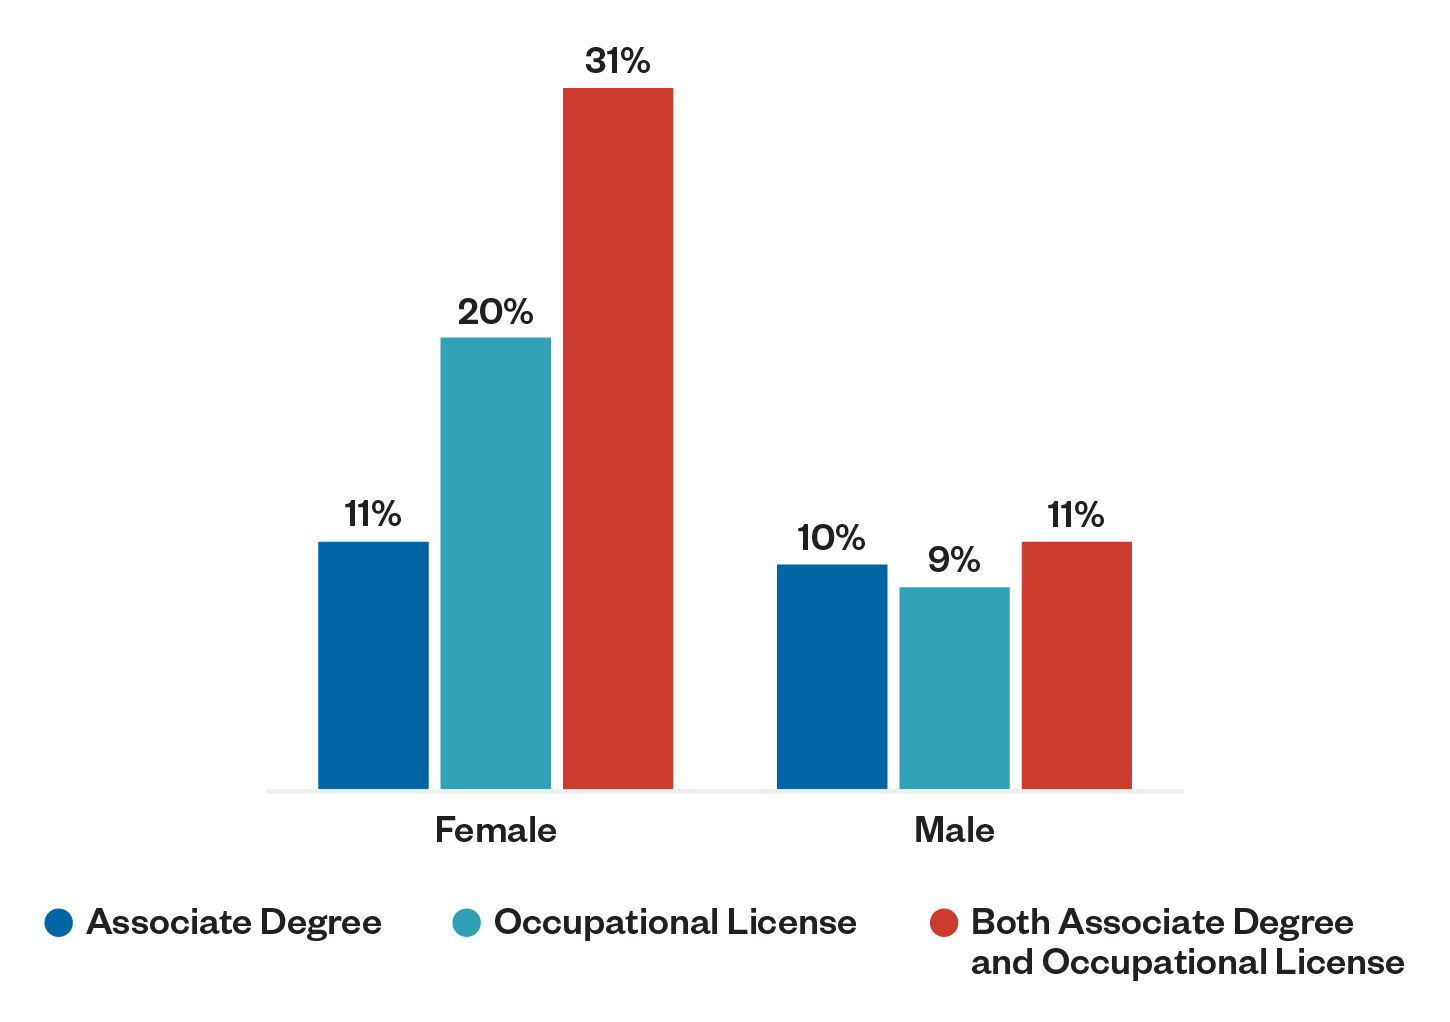 Figure 1: Earnings Gains Over Noncompleters. Female: associate degree, 11%; occupational license, 20%; both associate degree and occupational license, 31%. Male: associate degree, 10%; occupational license, 9%; both associate degree and occupational license, 11%.